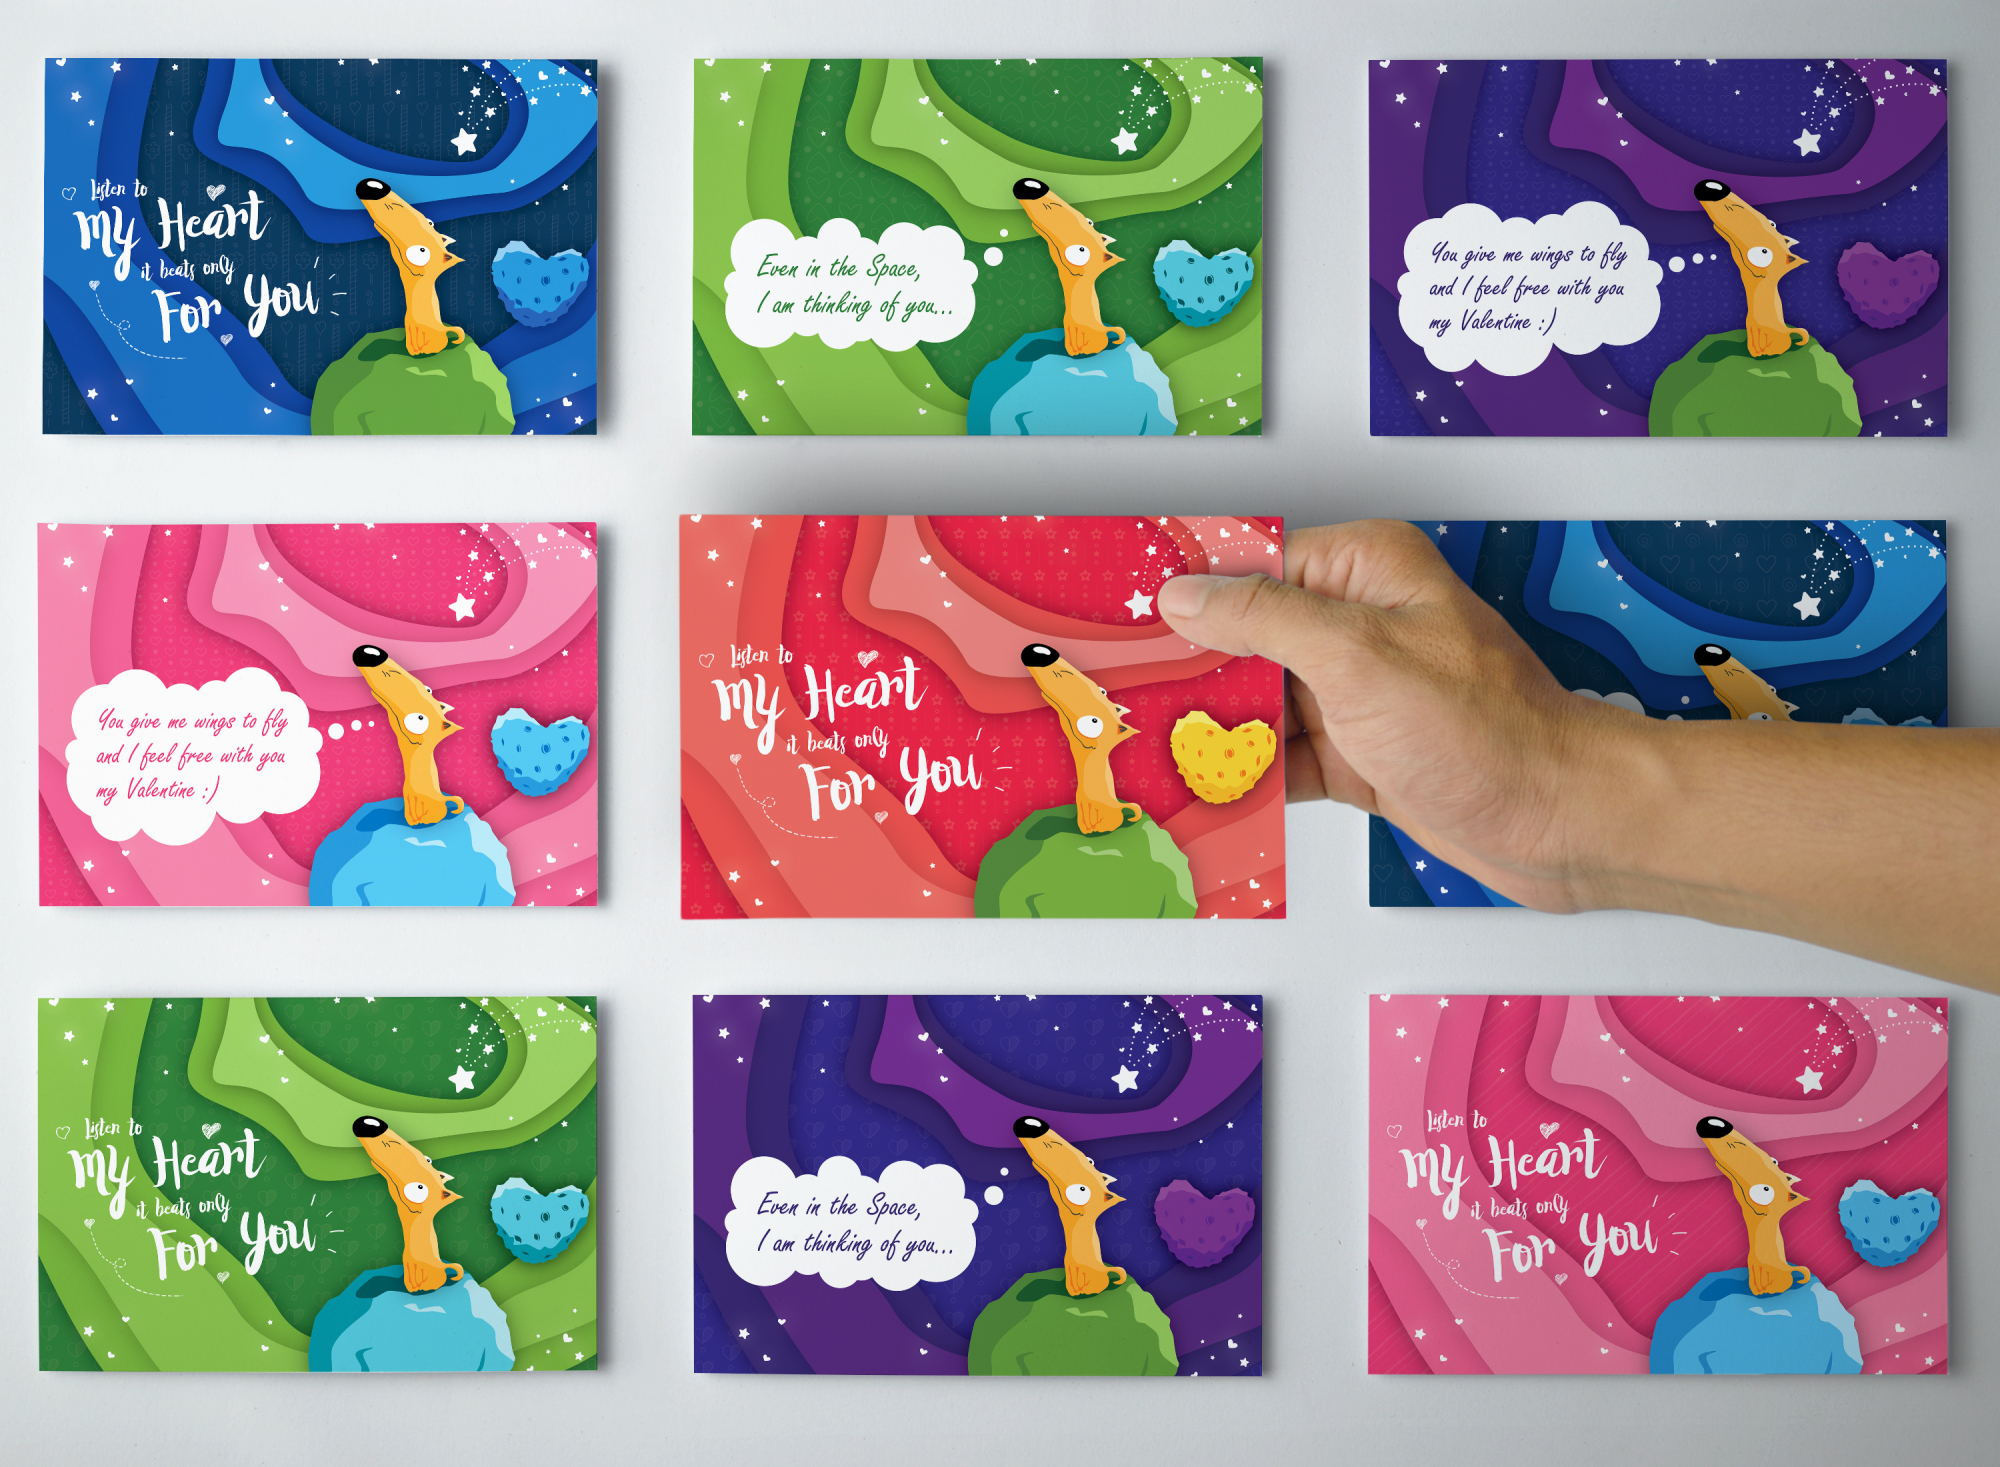 Dreaming Valentine greeting cards example image 4